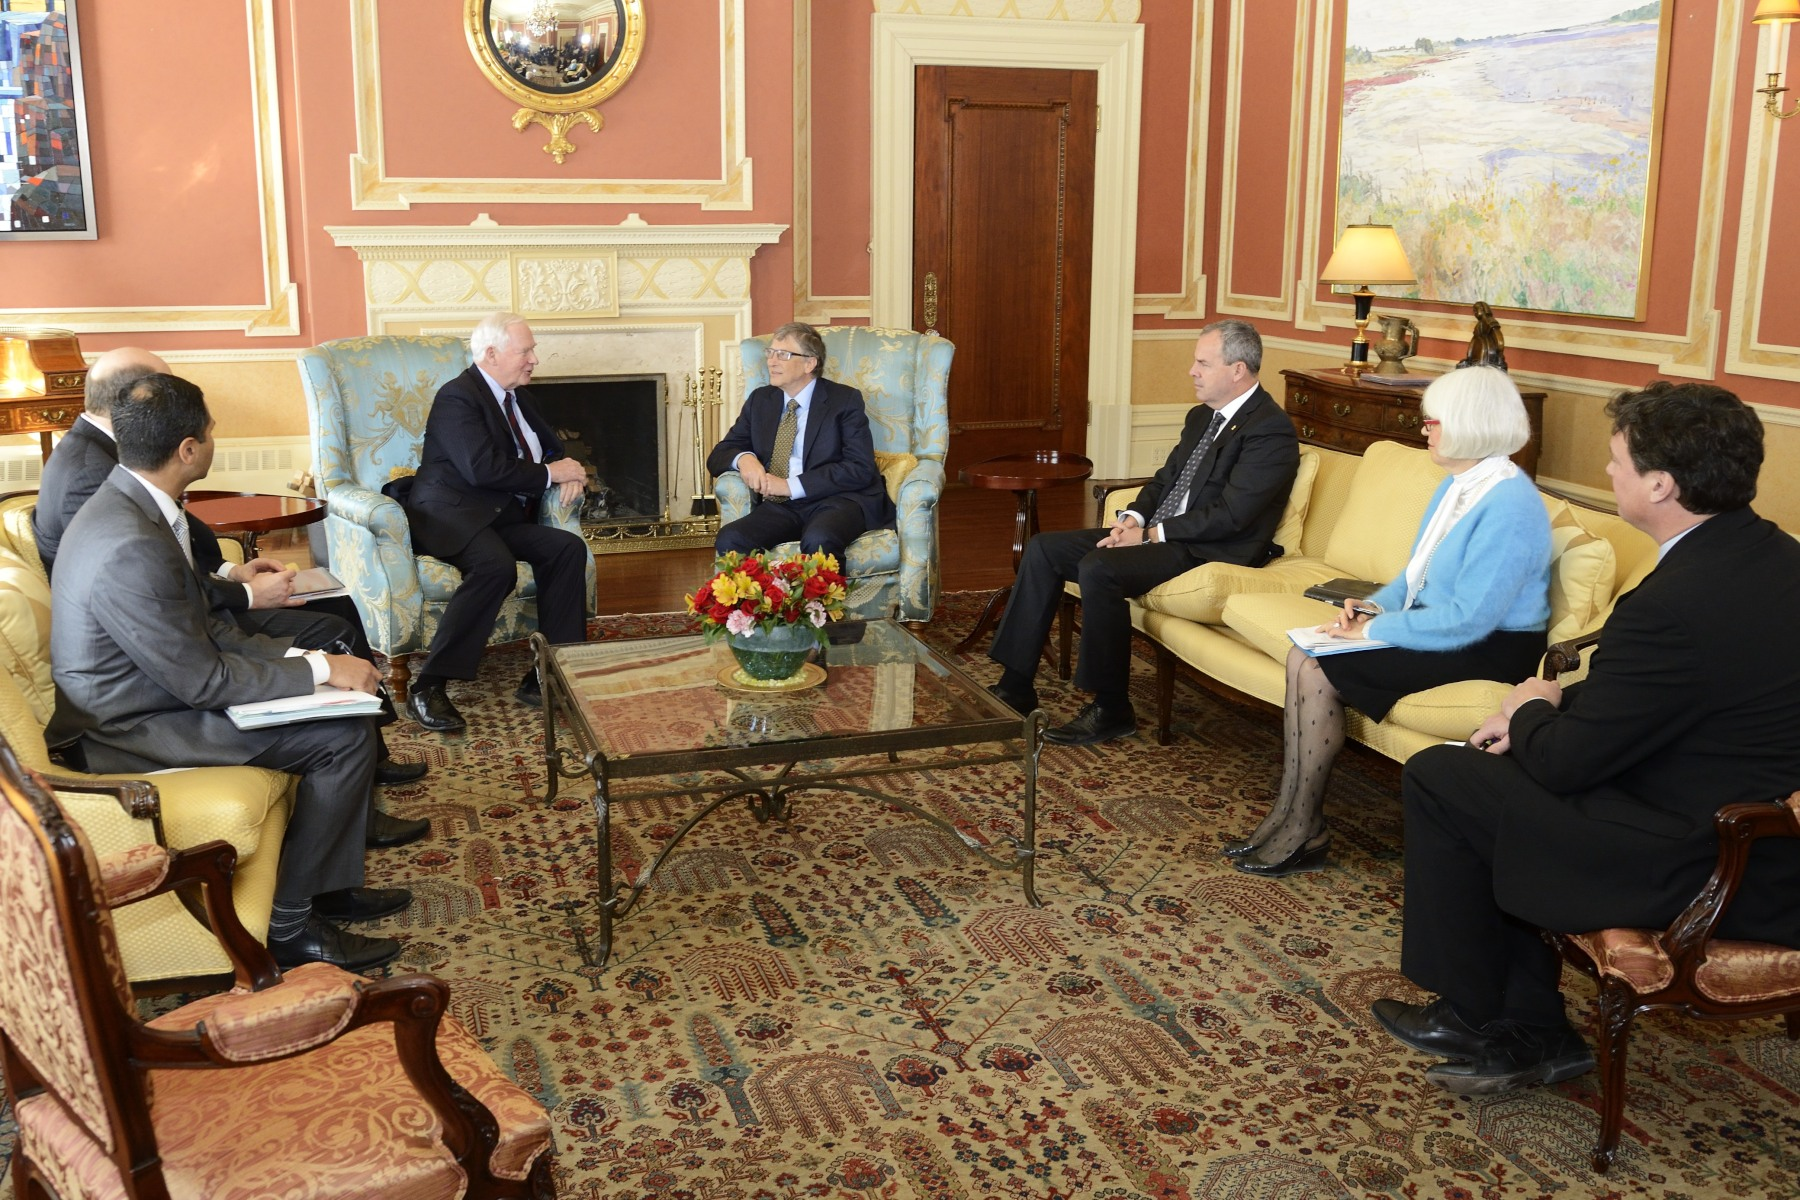 His Excellency and Mr. Gates, accompanied by advisors from Rideau Hall and the Bill and Melinda Gates Foundation, discussed matters relating to philanthropy.